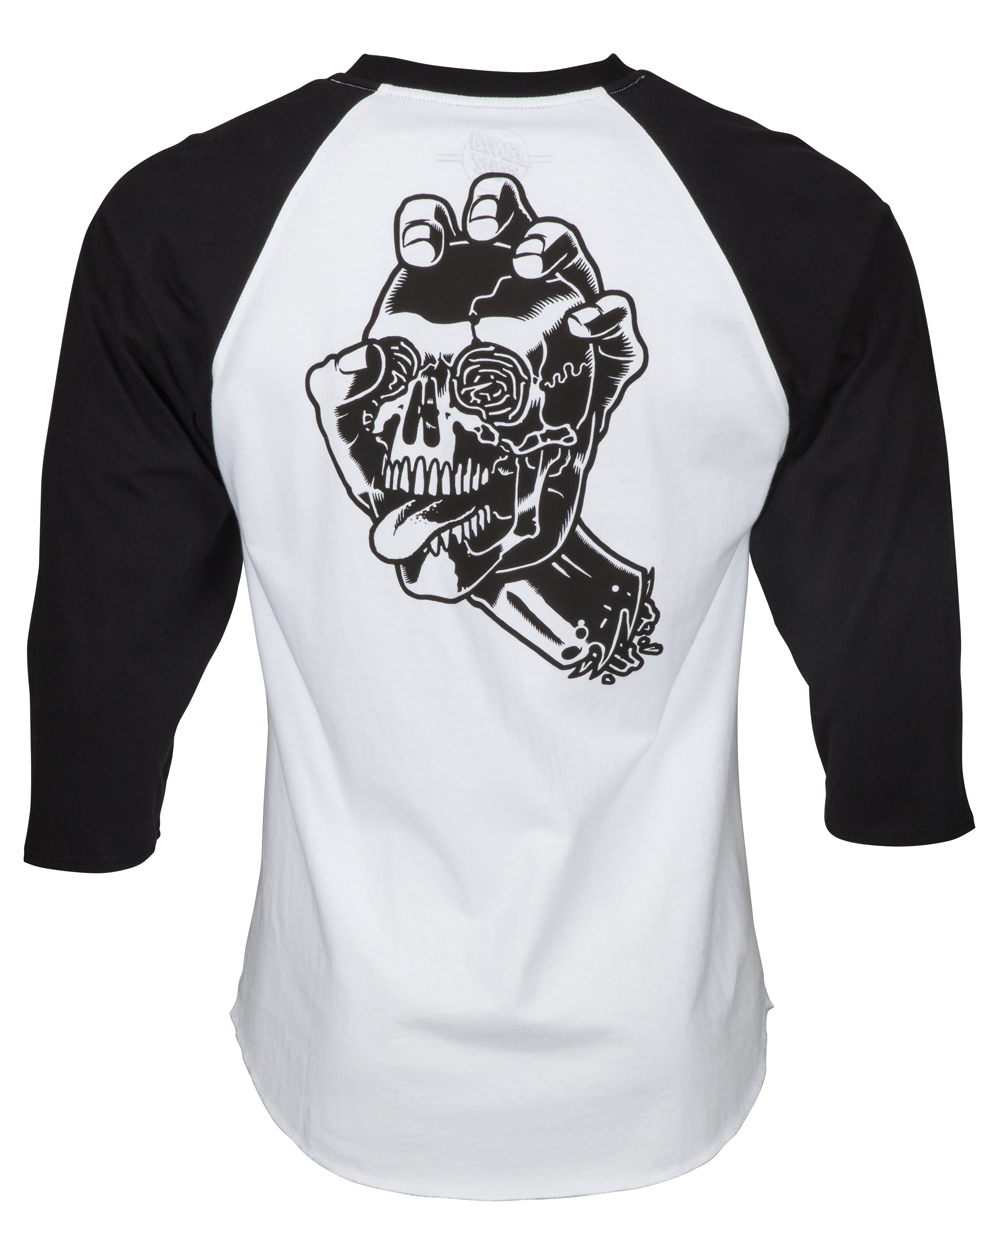 Santa Cruz Screaming Skull Baseball T-Shirt Uomo Black/White